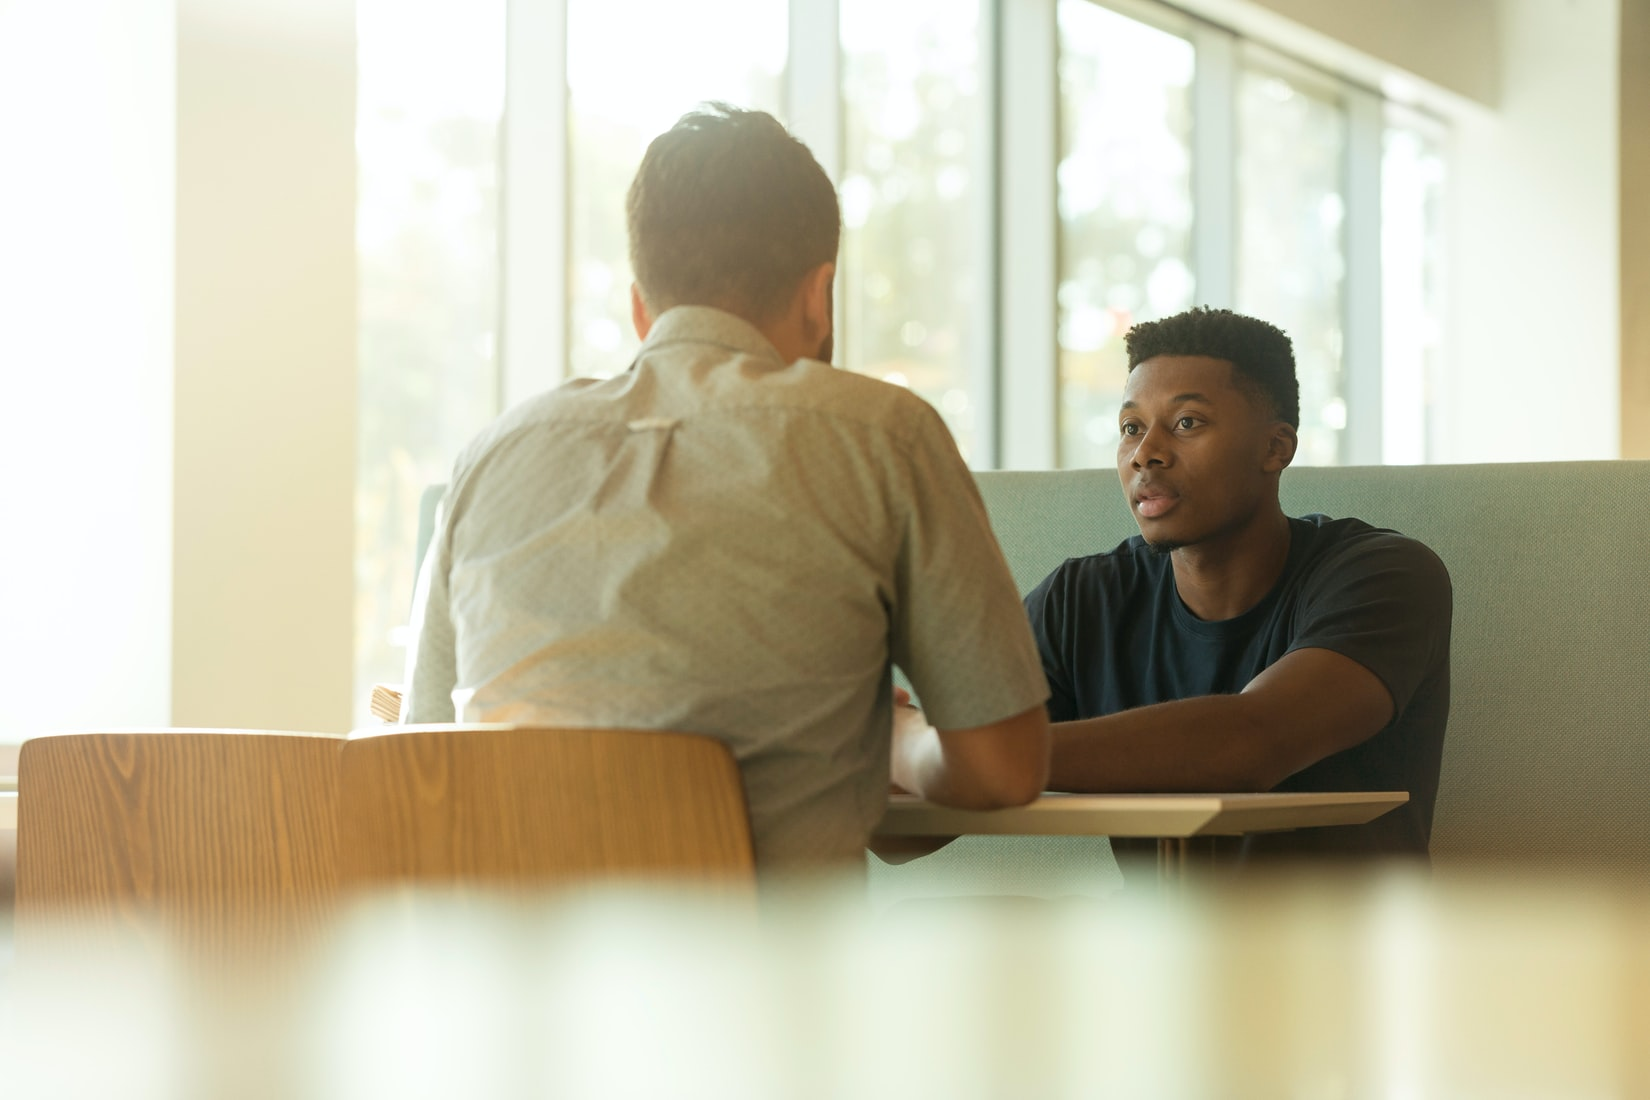 Stock image of Black man and White man having a conversation.